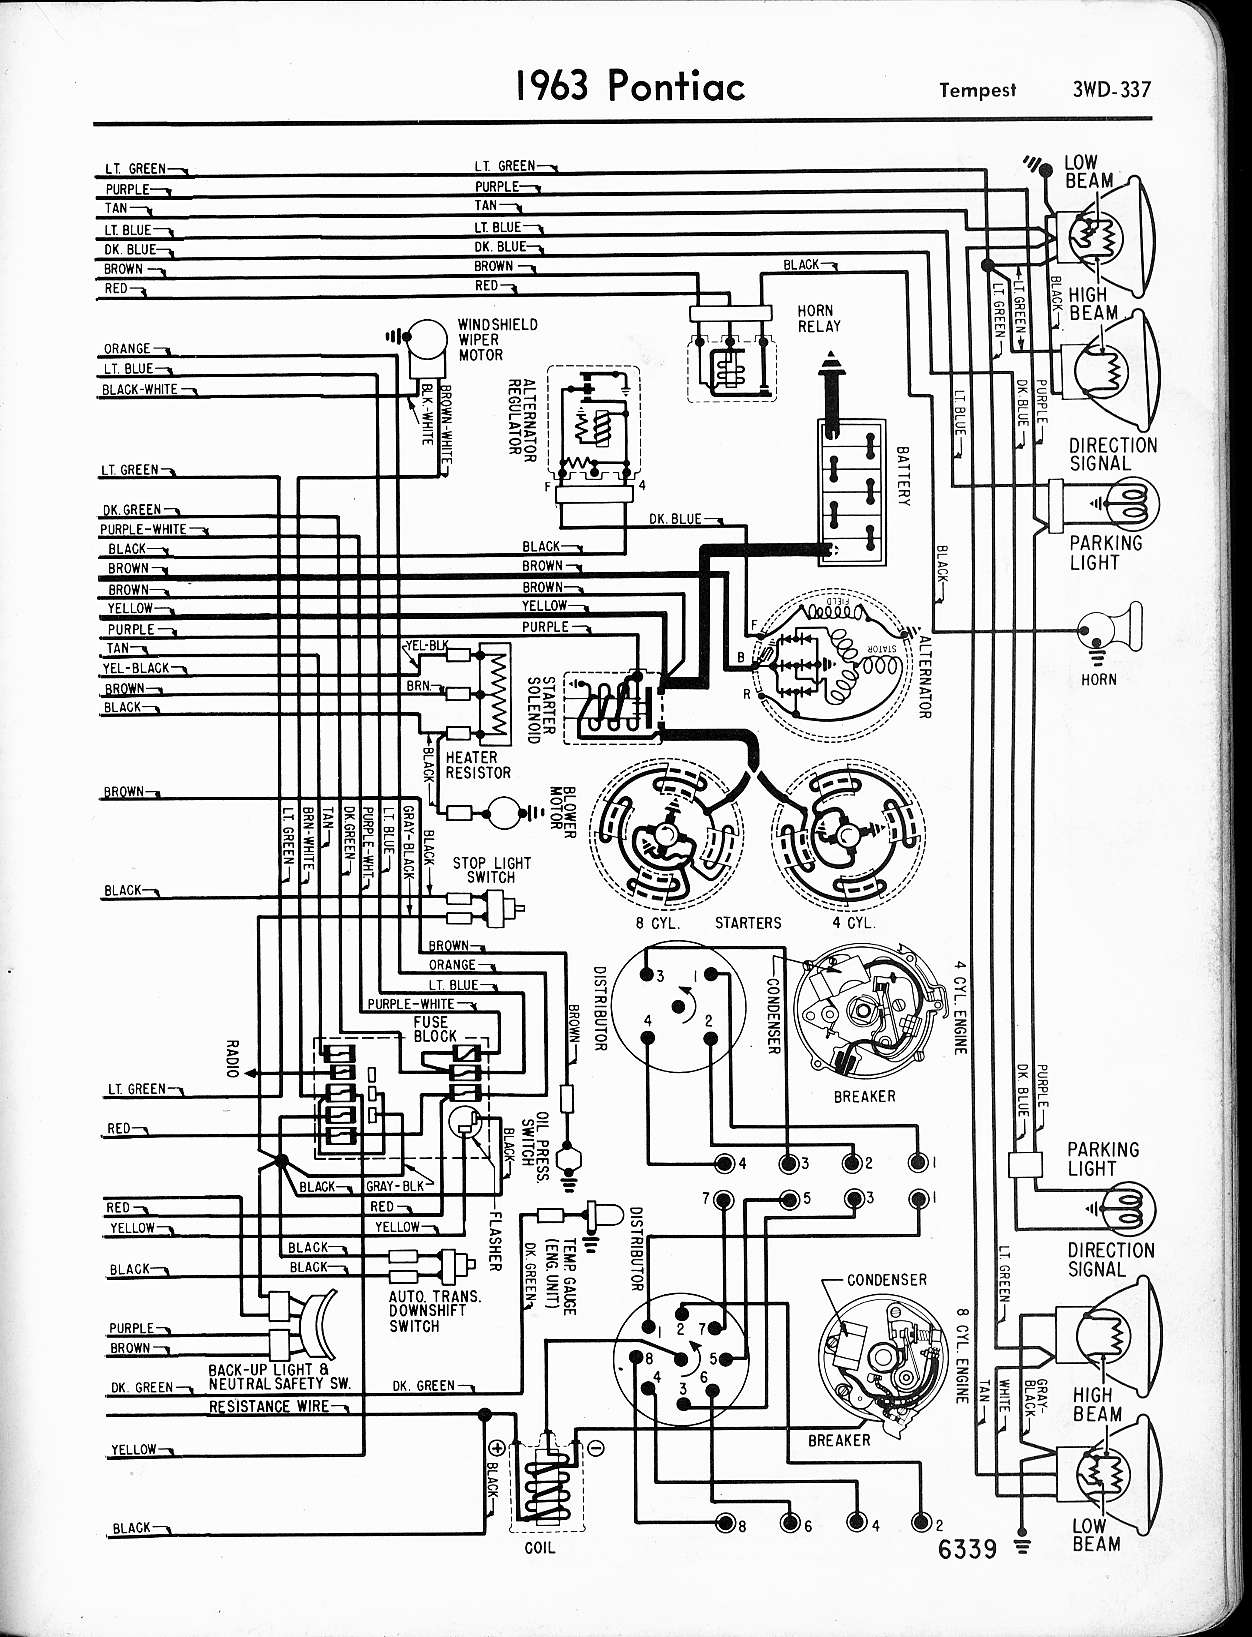 1969 Pontiac Grand Prix Wiring Diagram Simple Page Engine 1970 Le Mans Online 04 Gtp Diagrams